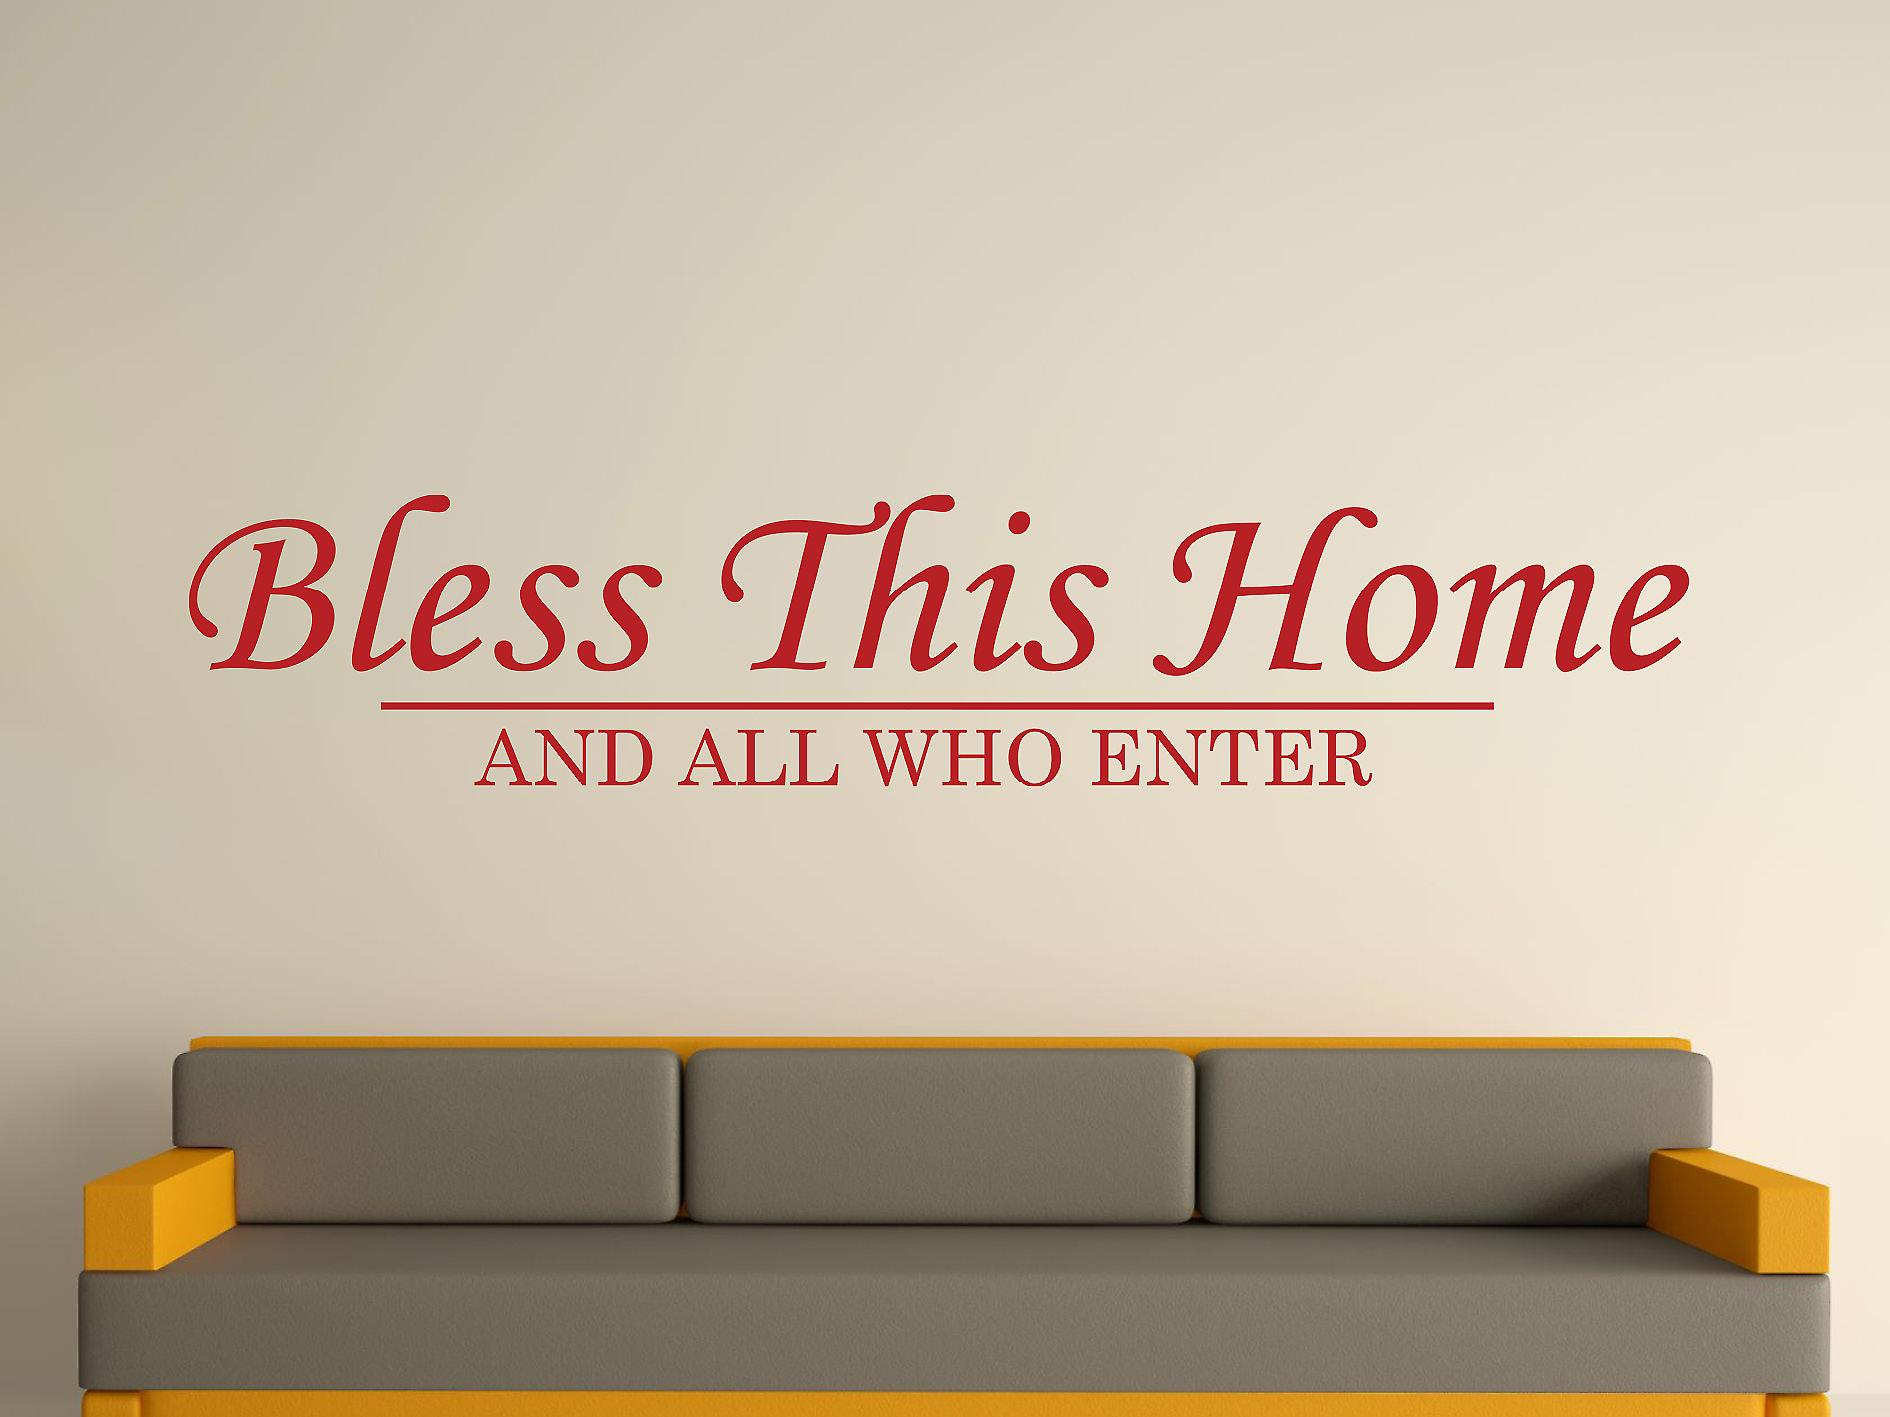 Bless This Home Wall Art Sticker - Dark Red